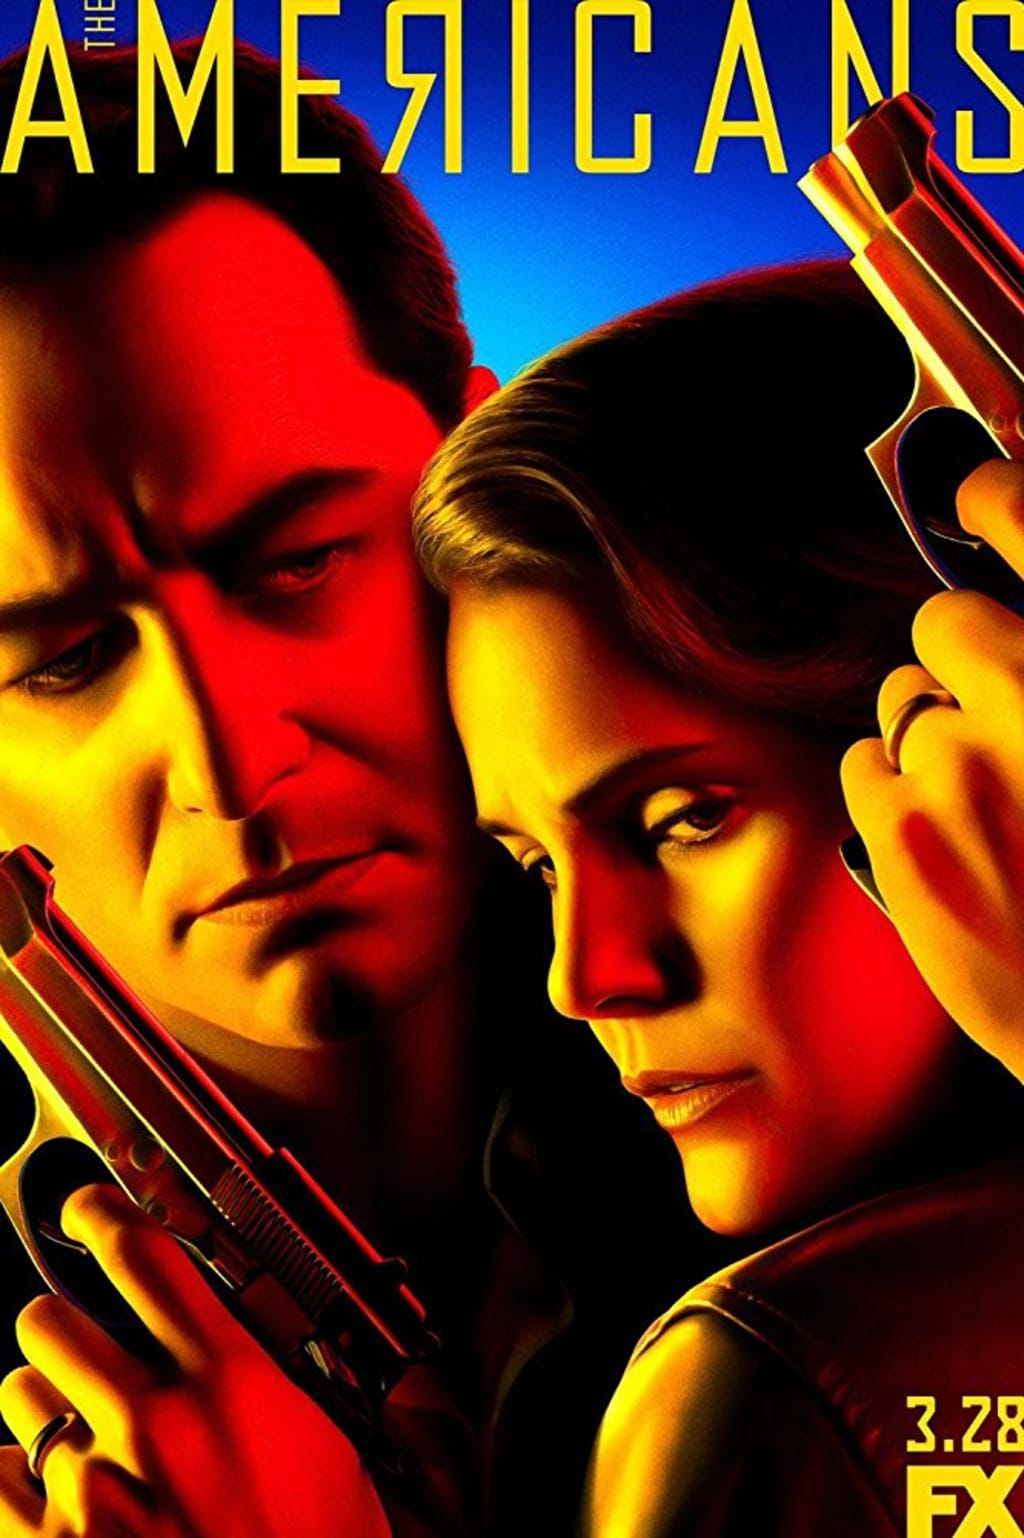 Review of 'The Americans' 6.8